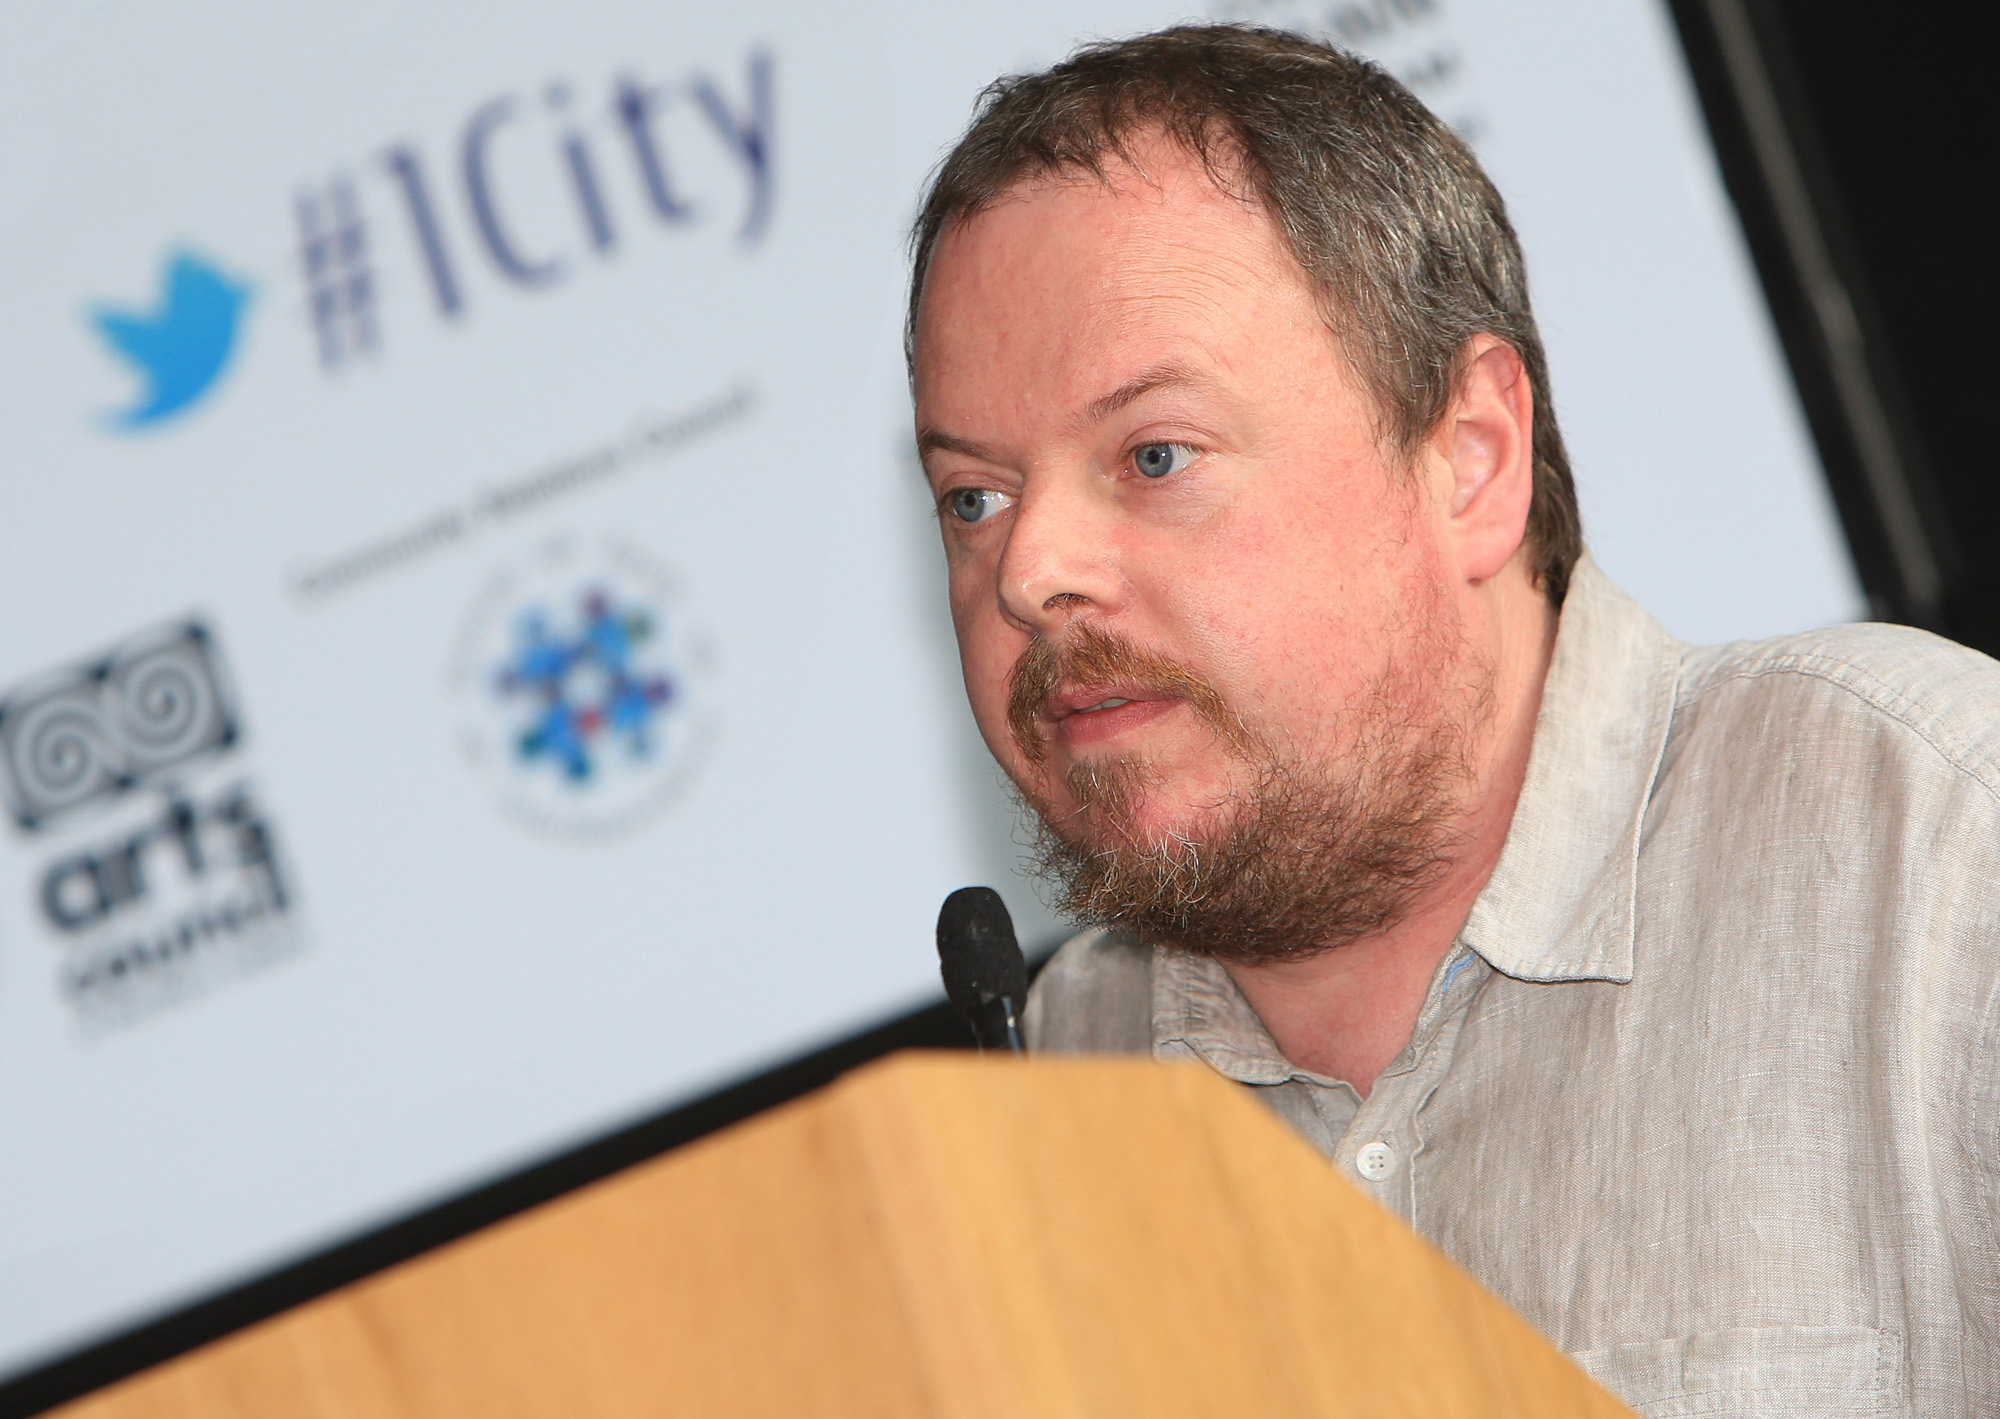 Belfast MET E3, One City Conference 'Lifting the City' . pictured: Mark Hackett (Forum for an Alternative Belfast) 95JC13